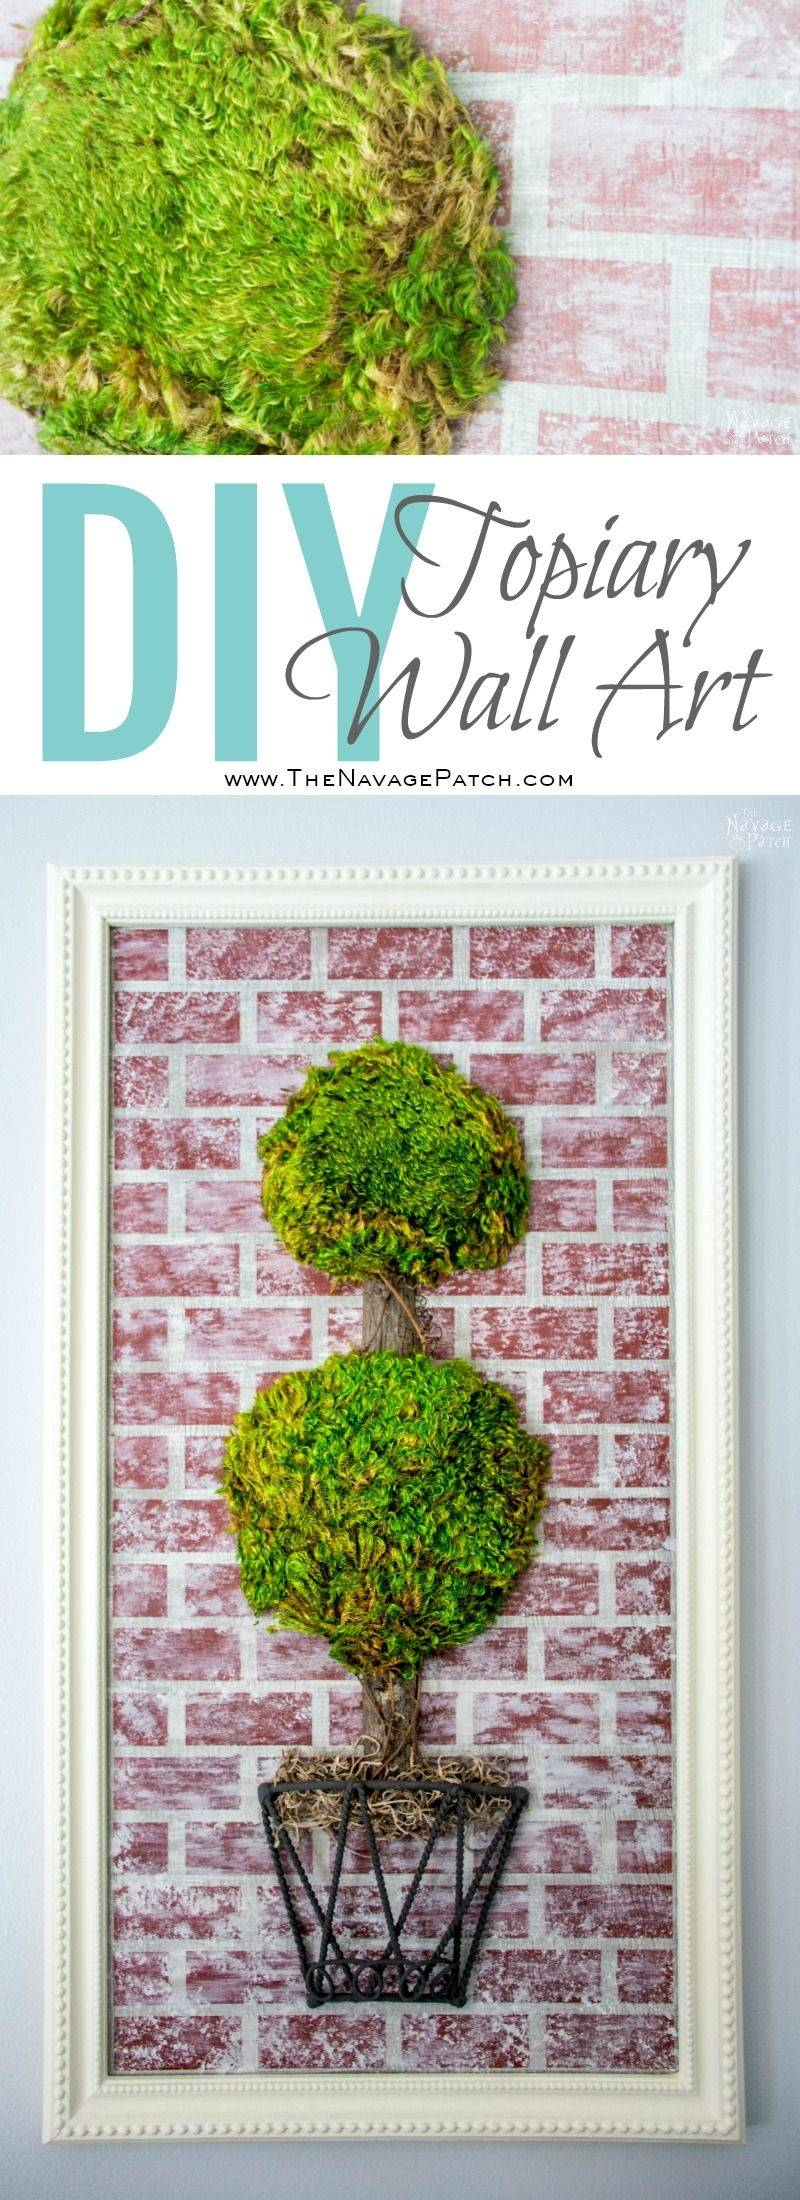 Topiary Wall Art – The Navage Patch For Most Current Topiary Wall Art (View 17 of 30)